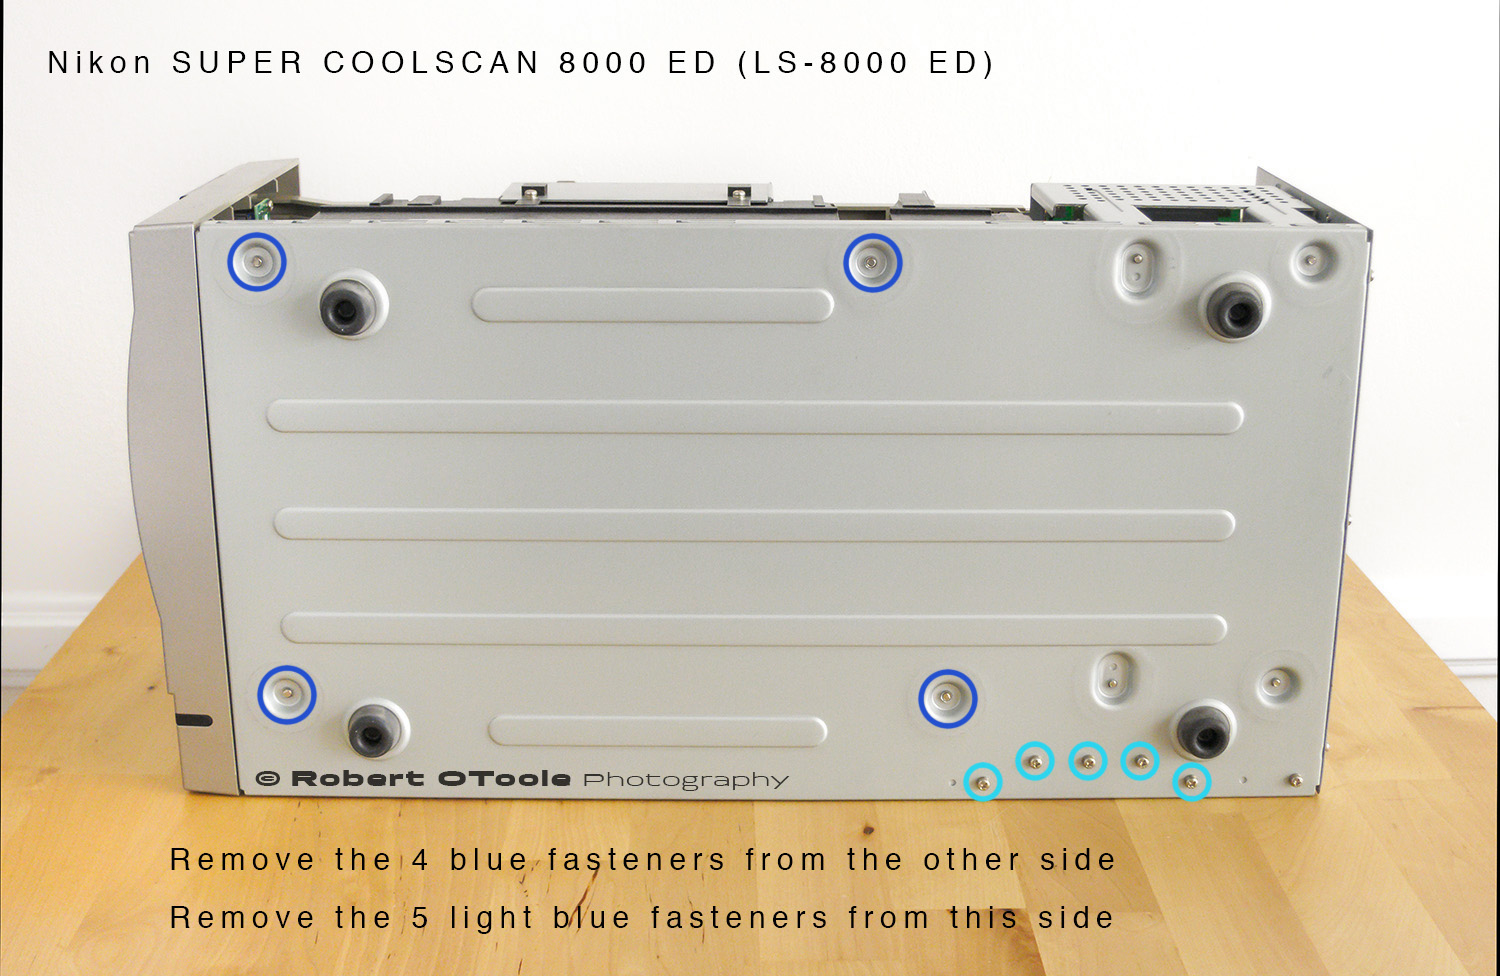 Front panel assembly for Nikon Super Coolscan LS 8000 ED scanner